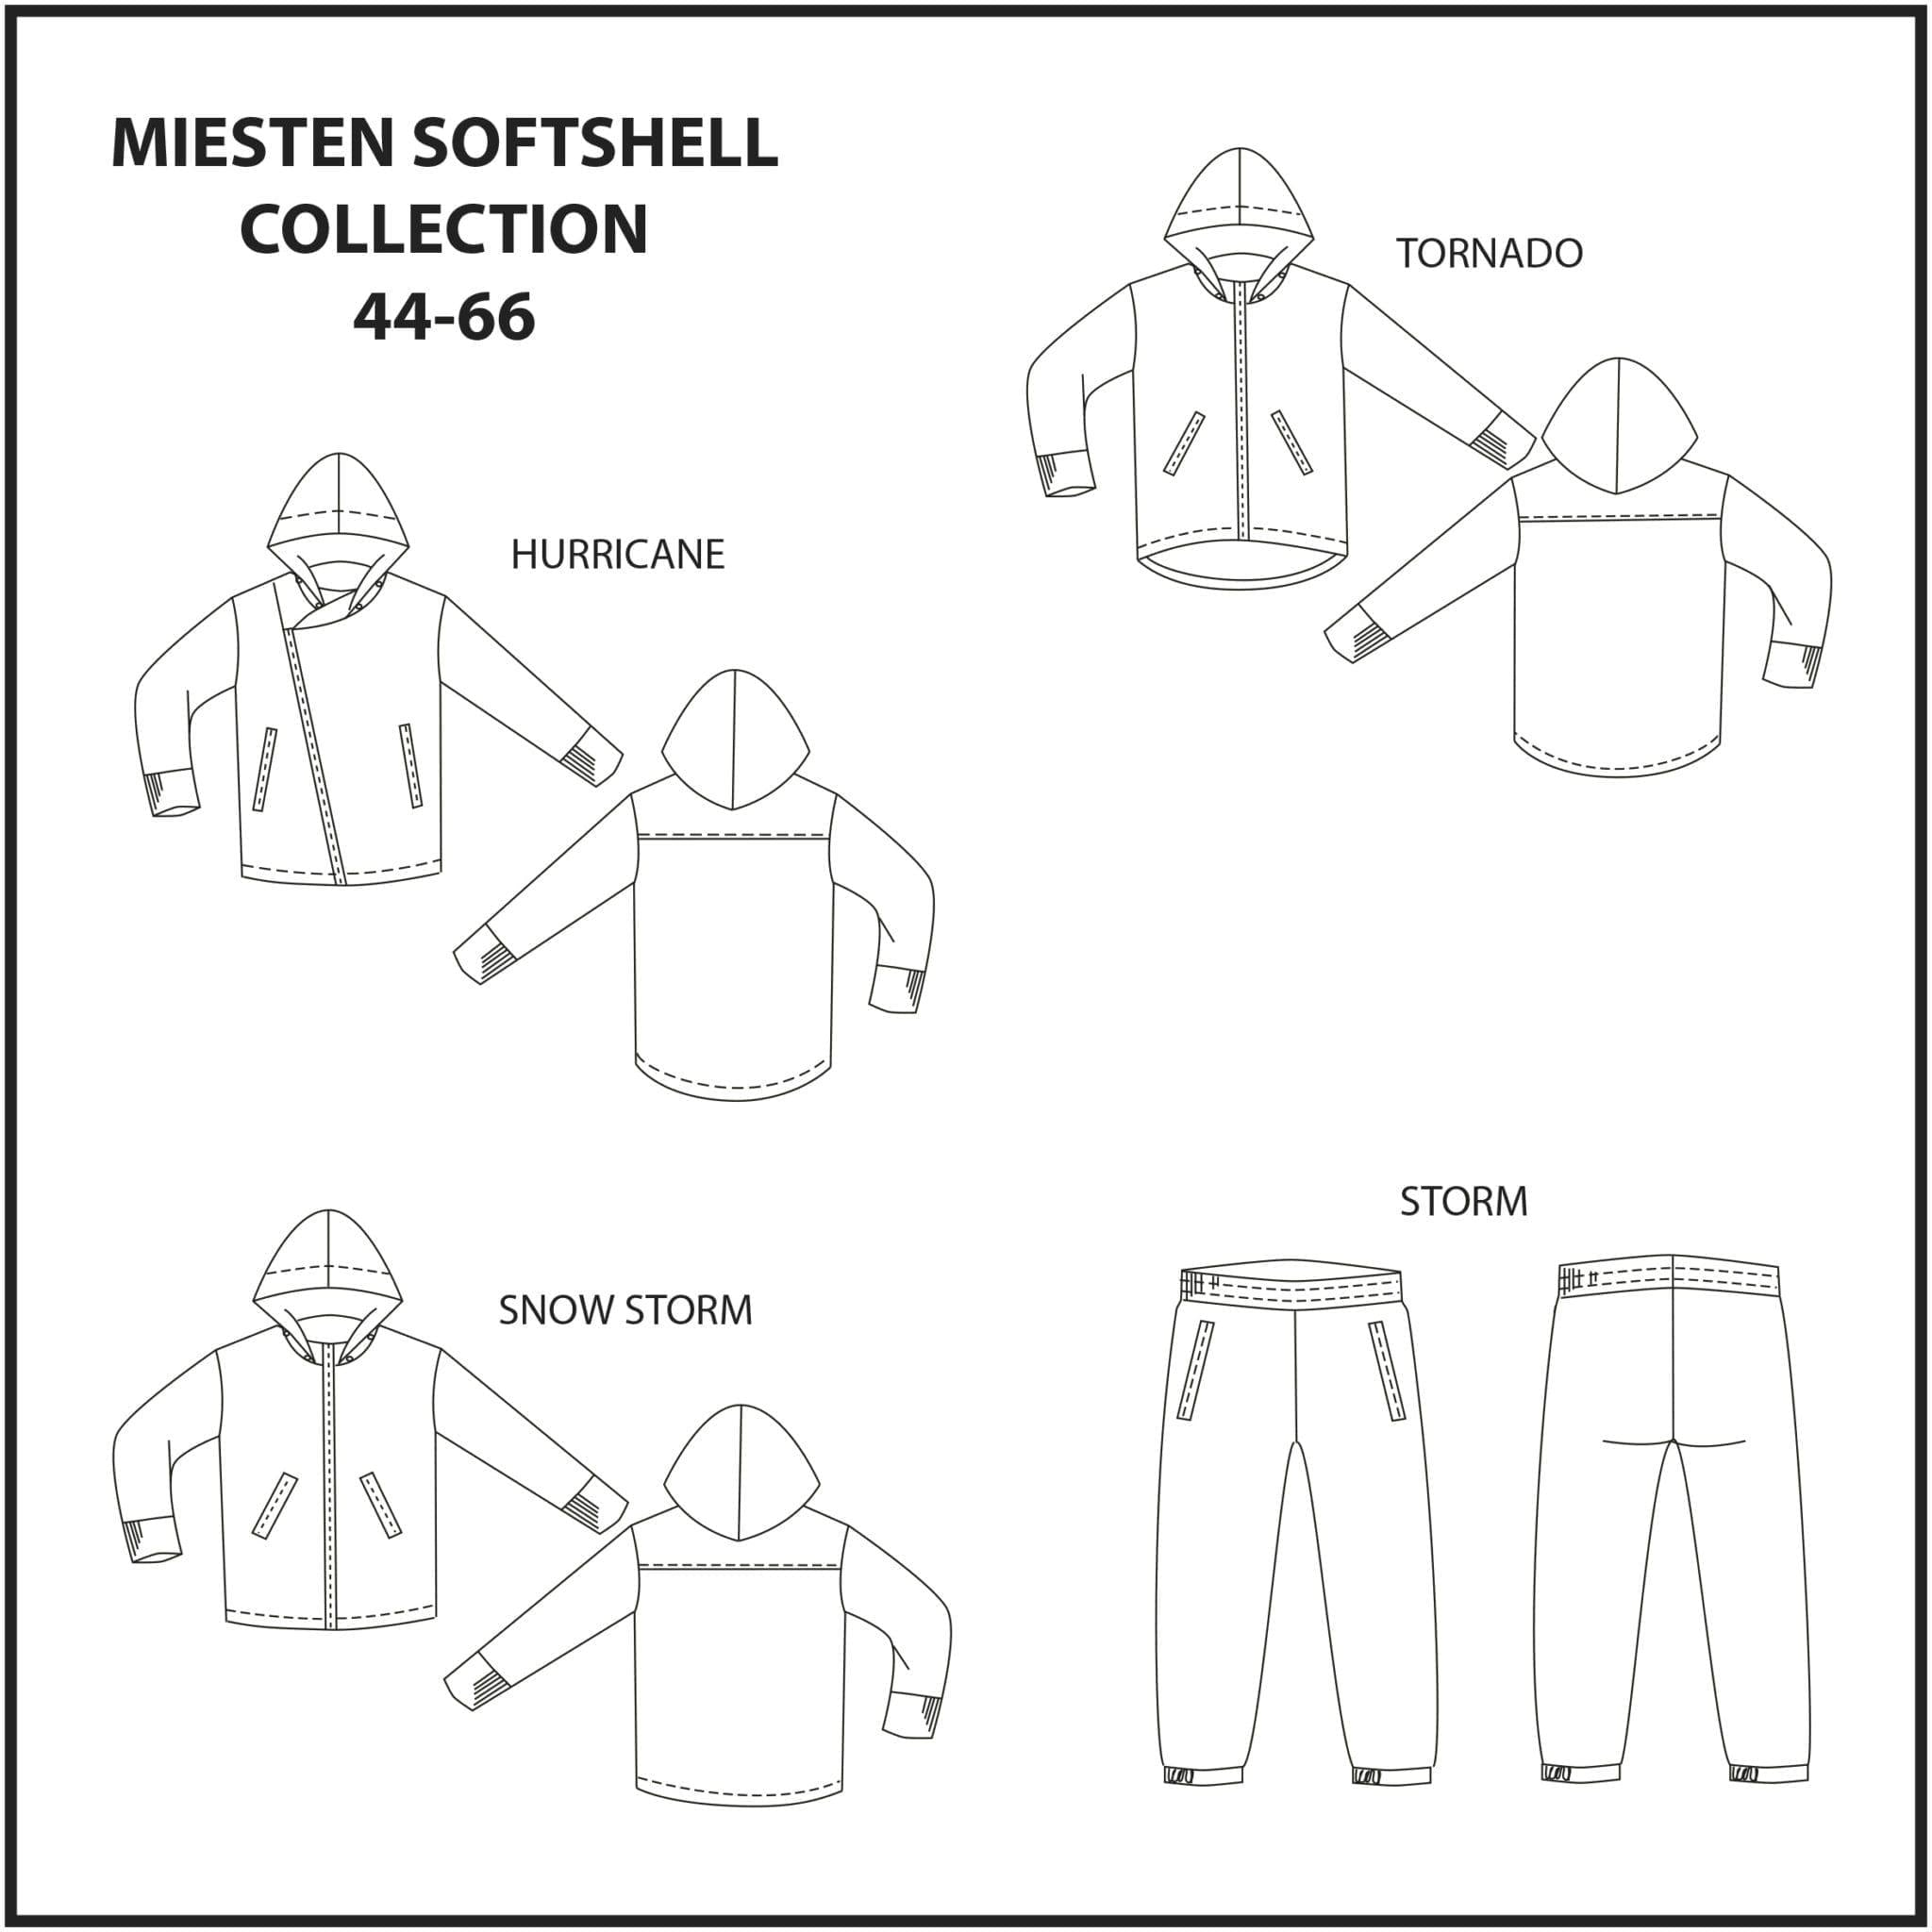 Miesten Softshell Collection 44-66